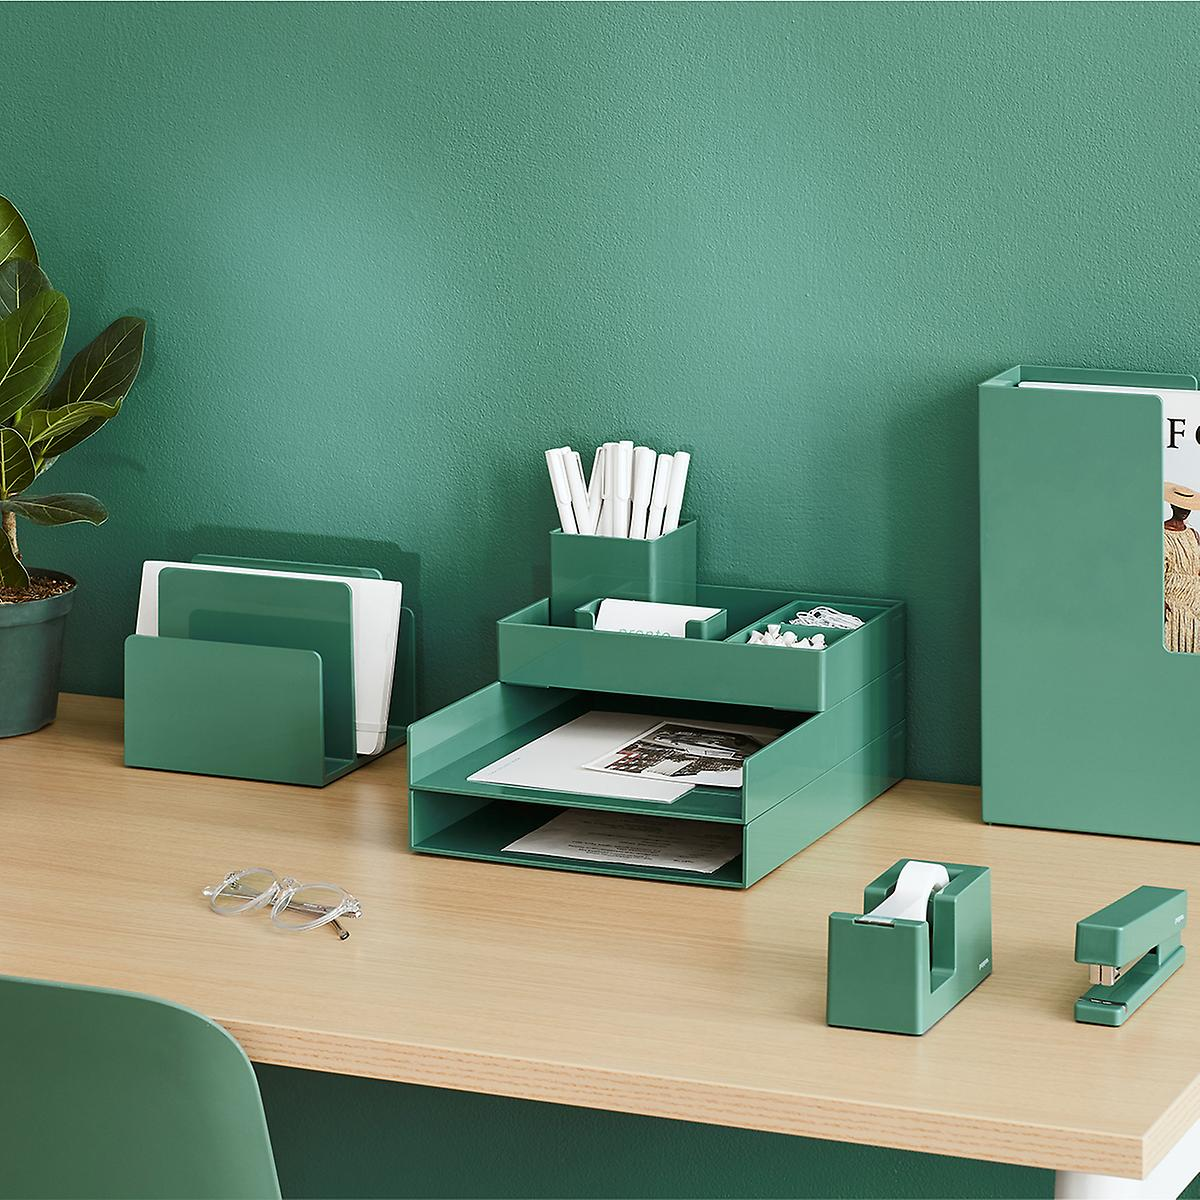 Poppin green desk set